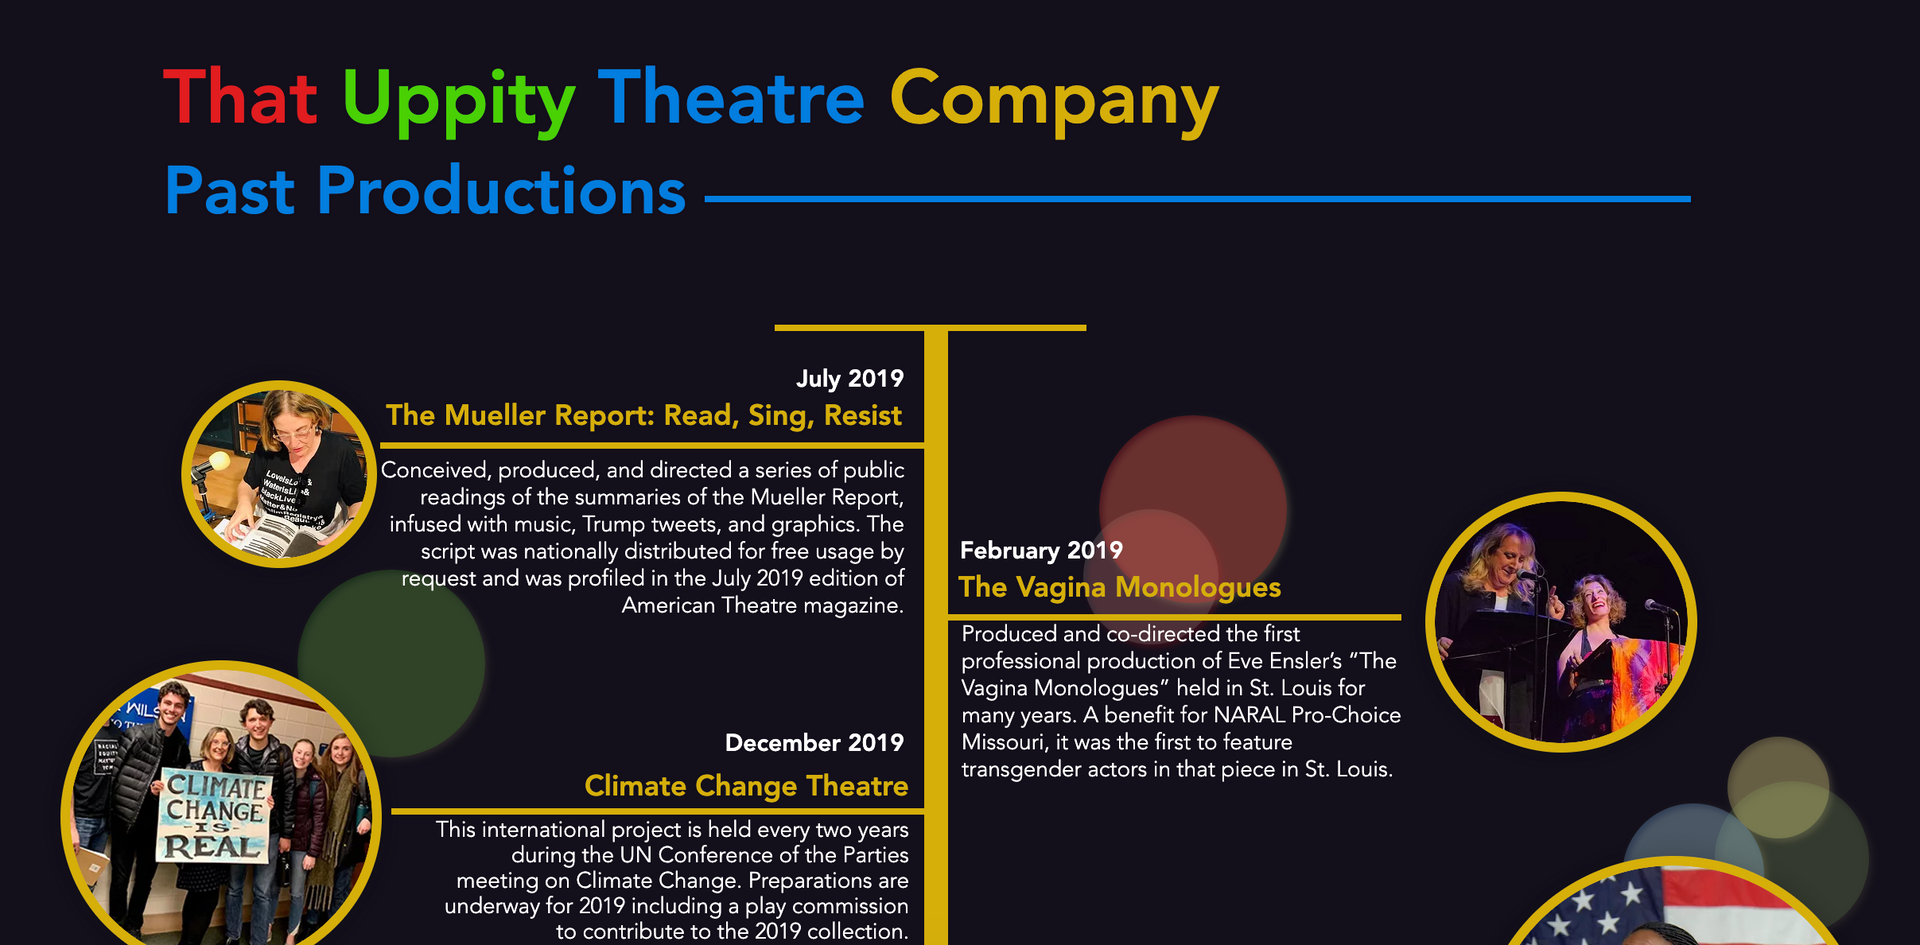 That Uppity Theatre Company Production TimeLine